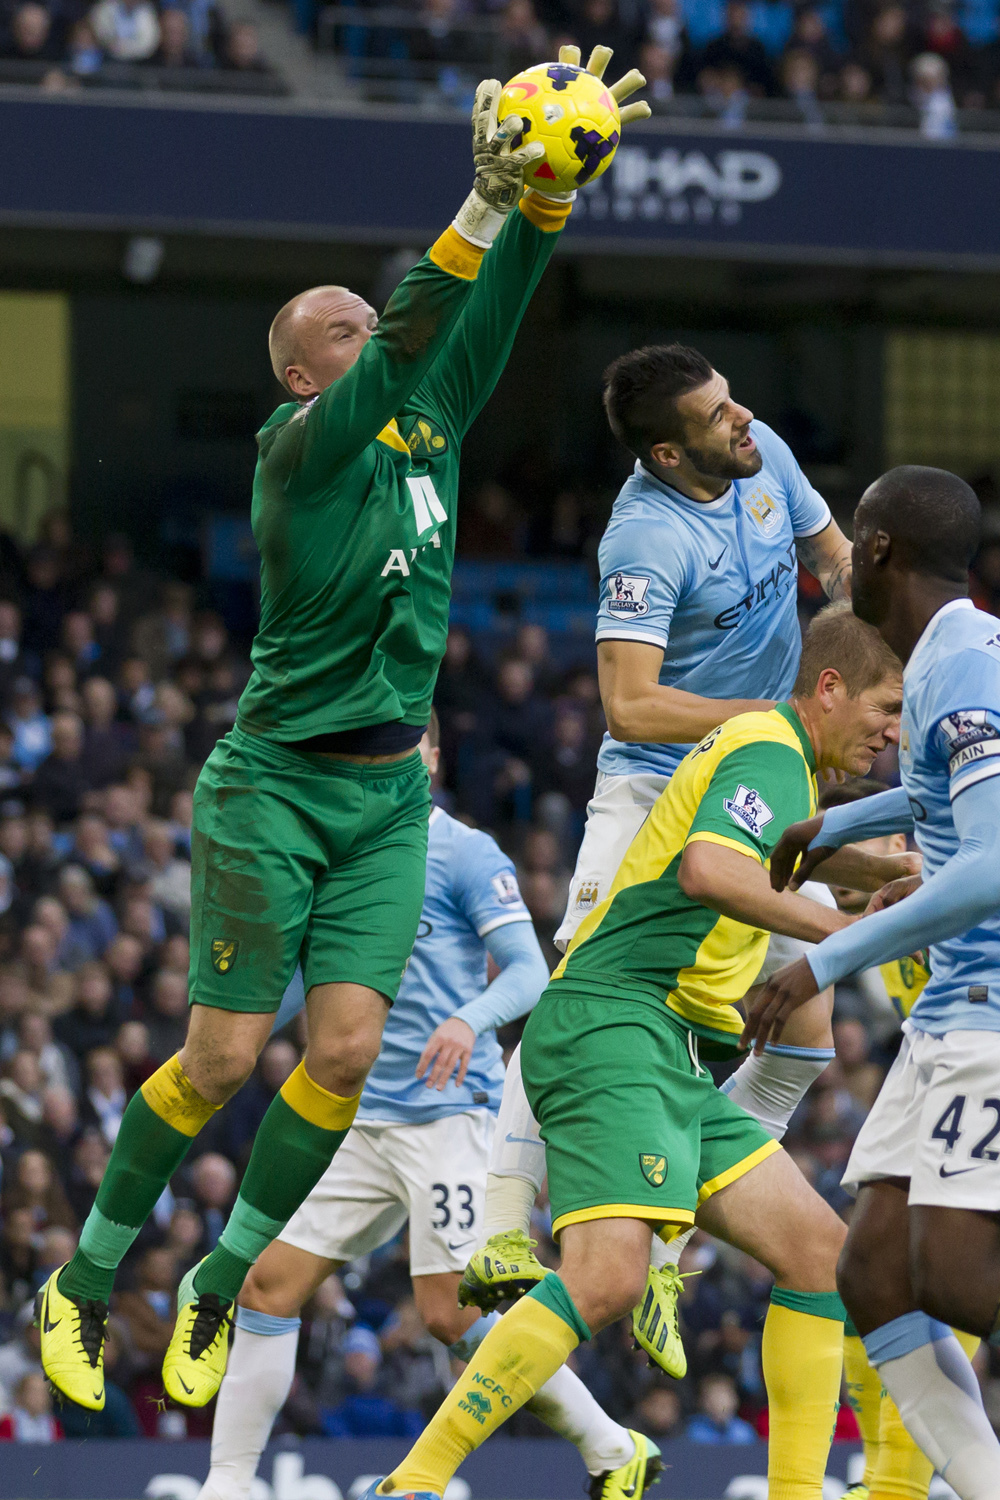 Manchester City 7, Norwich City 0